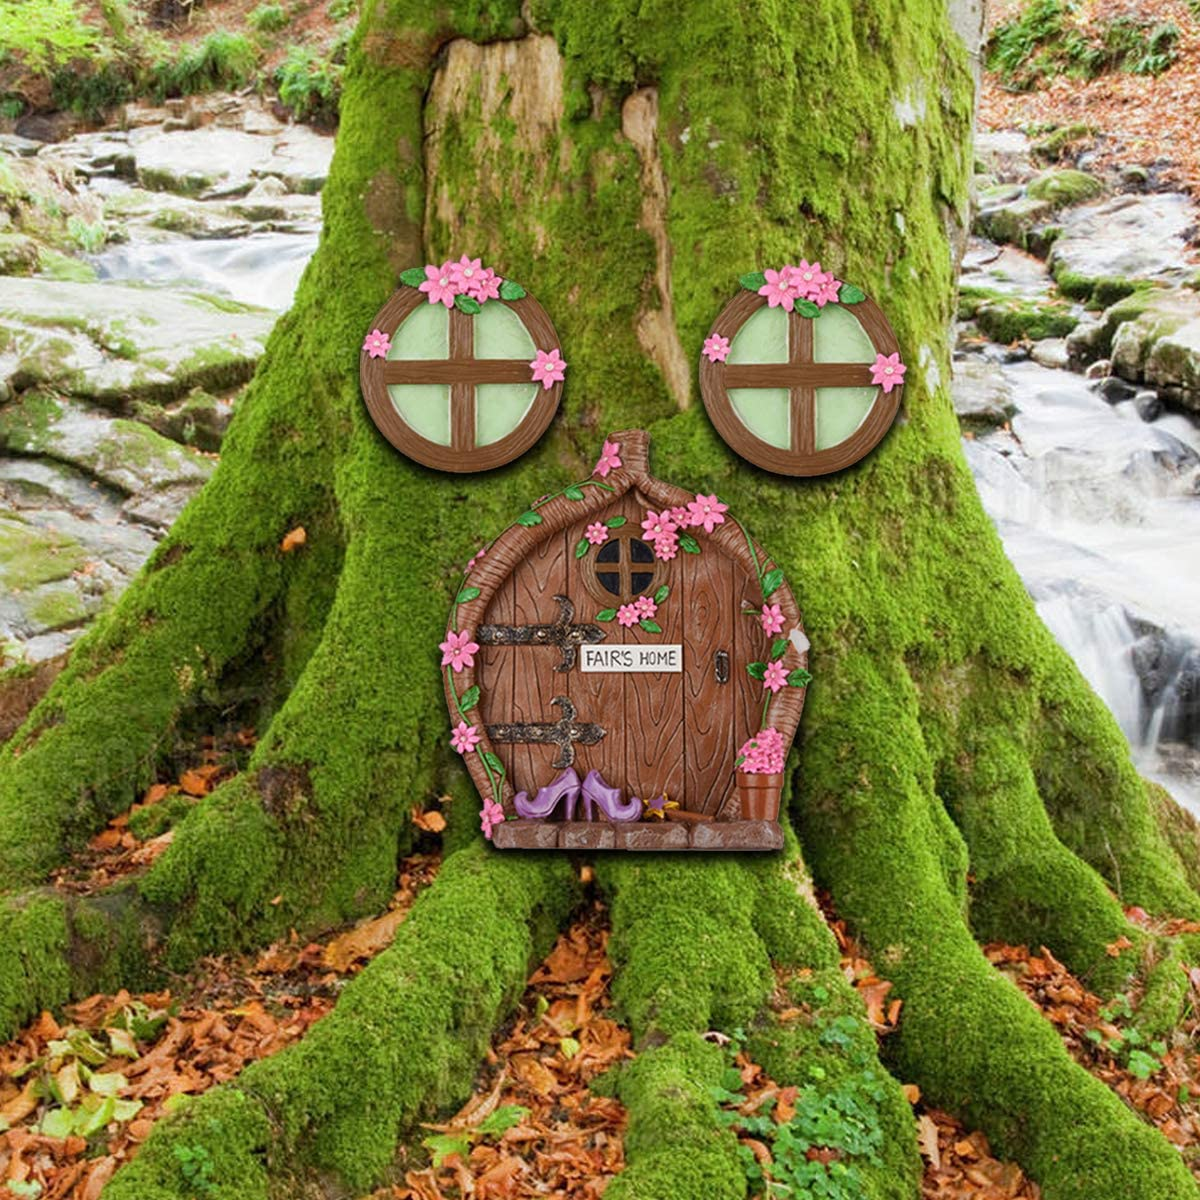 Robkea Miniature Fairy Gnome Home Window and Door for Trees - Garden Sculpture Decoration - Tree Decorations Yard Art